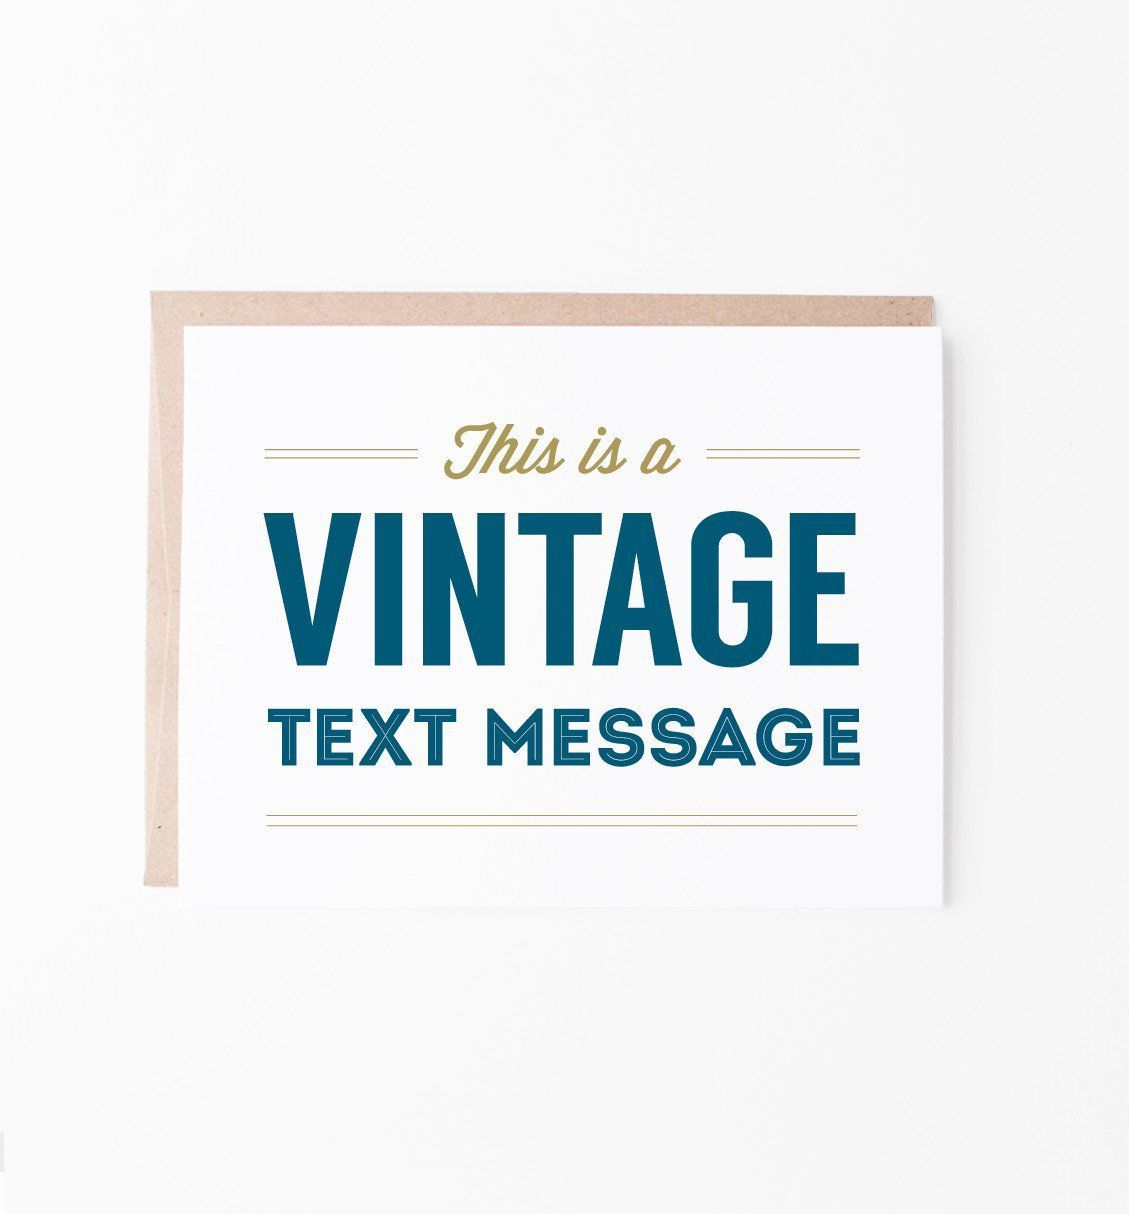 Vintage text message greeting card bestbusinesscards best vintage text message greeting card bestbusinesscards colourmoves